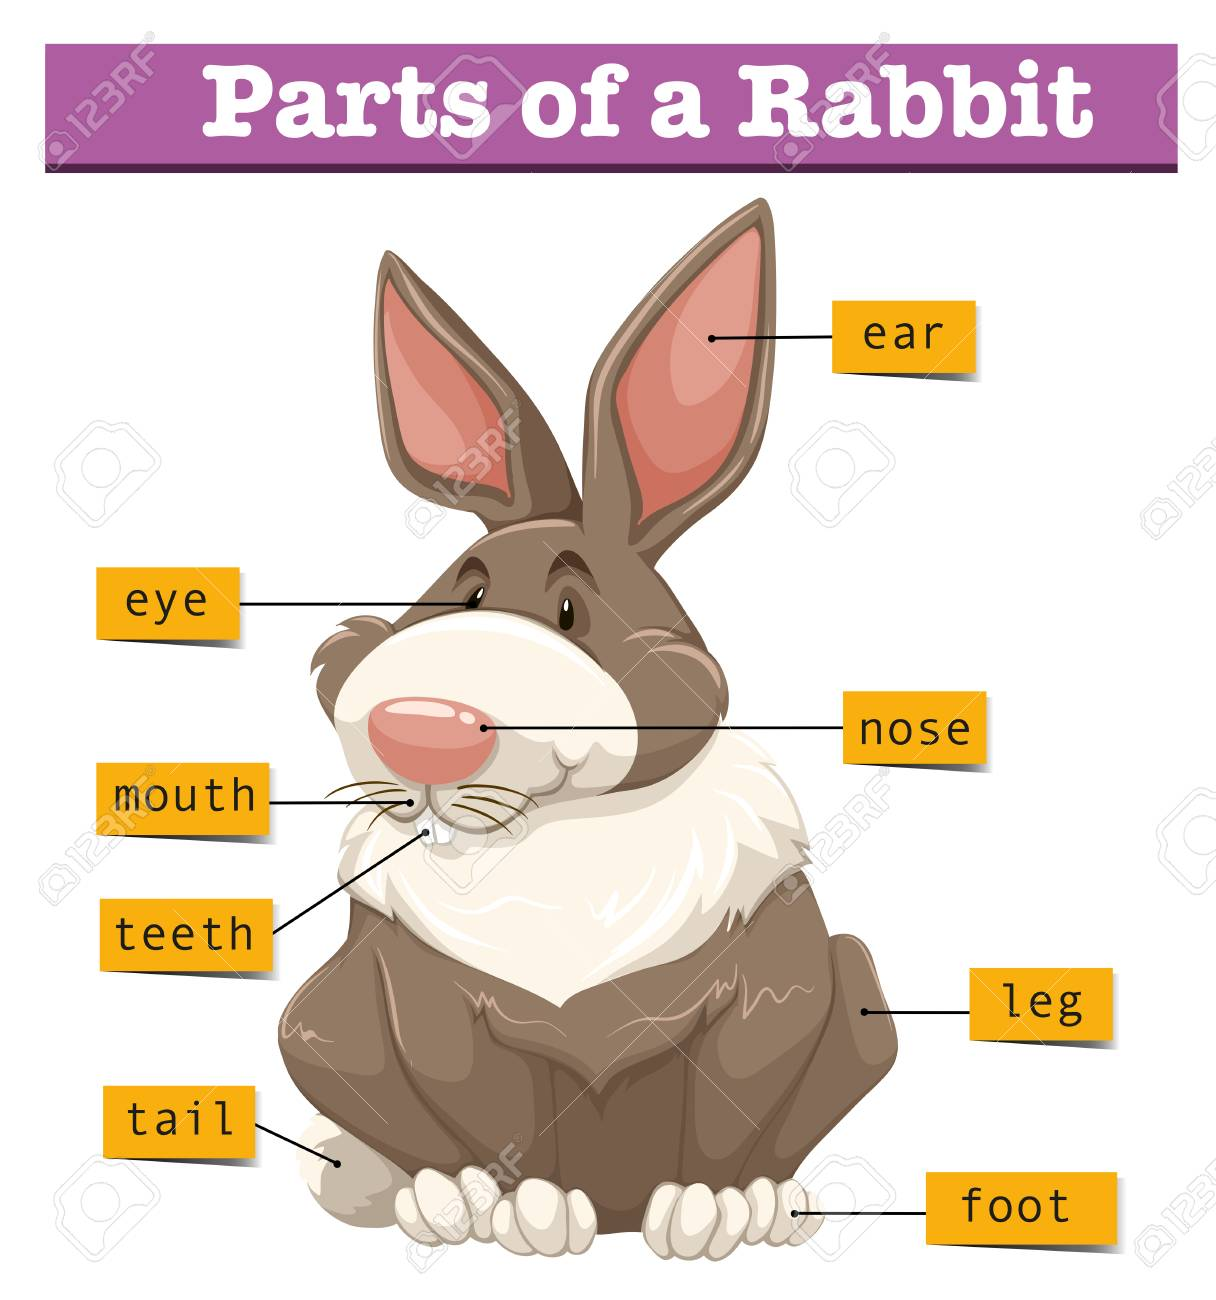 Diagram Showing Parts Of Rabbit Illustration Royalty Free Cliparts,  Vectors, And Stock Illustration. Image 61180557.123RF.com